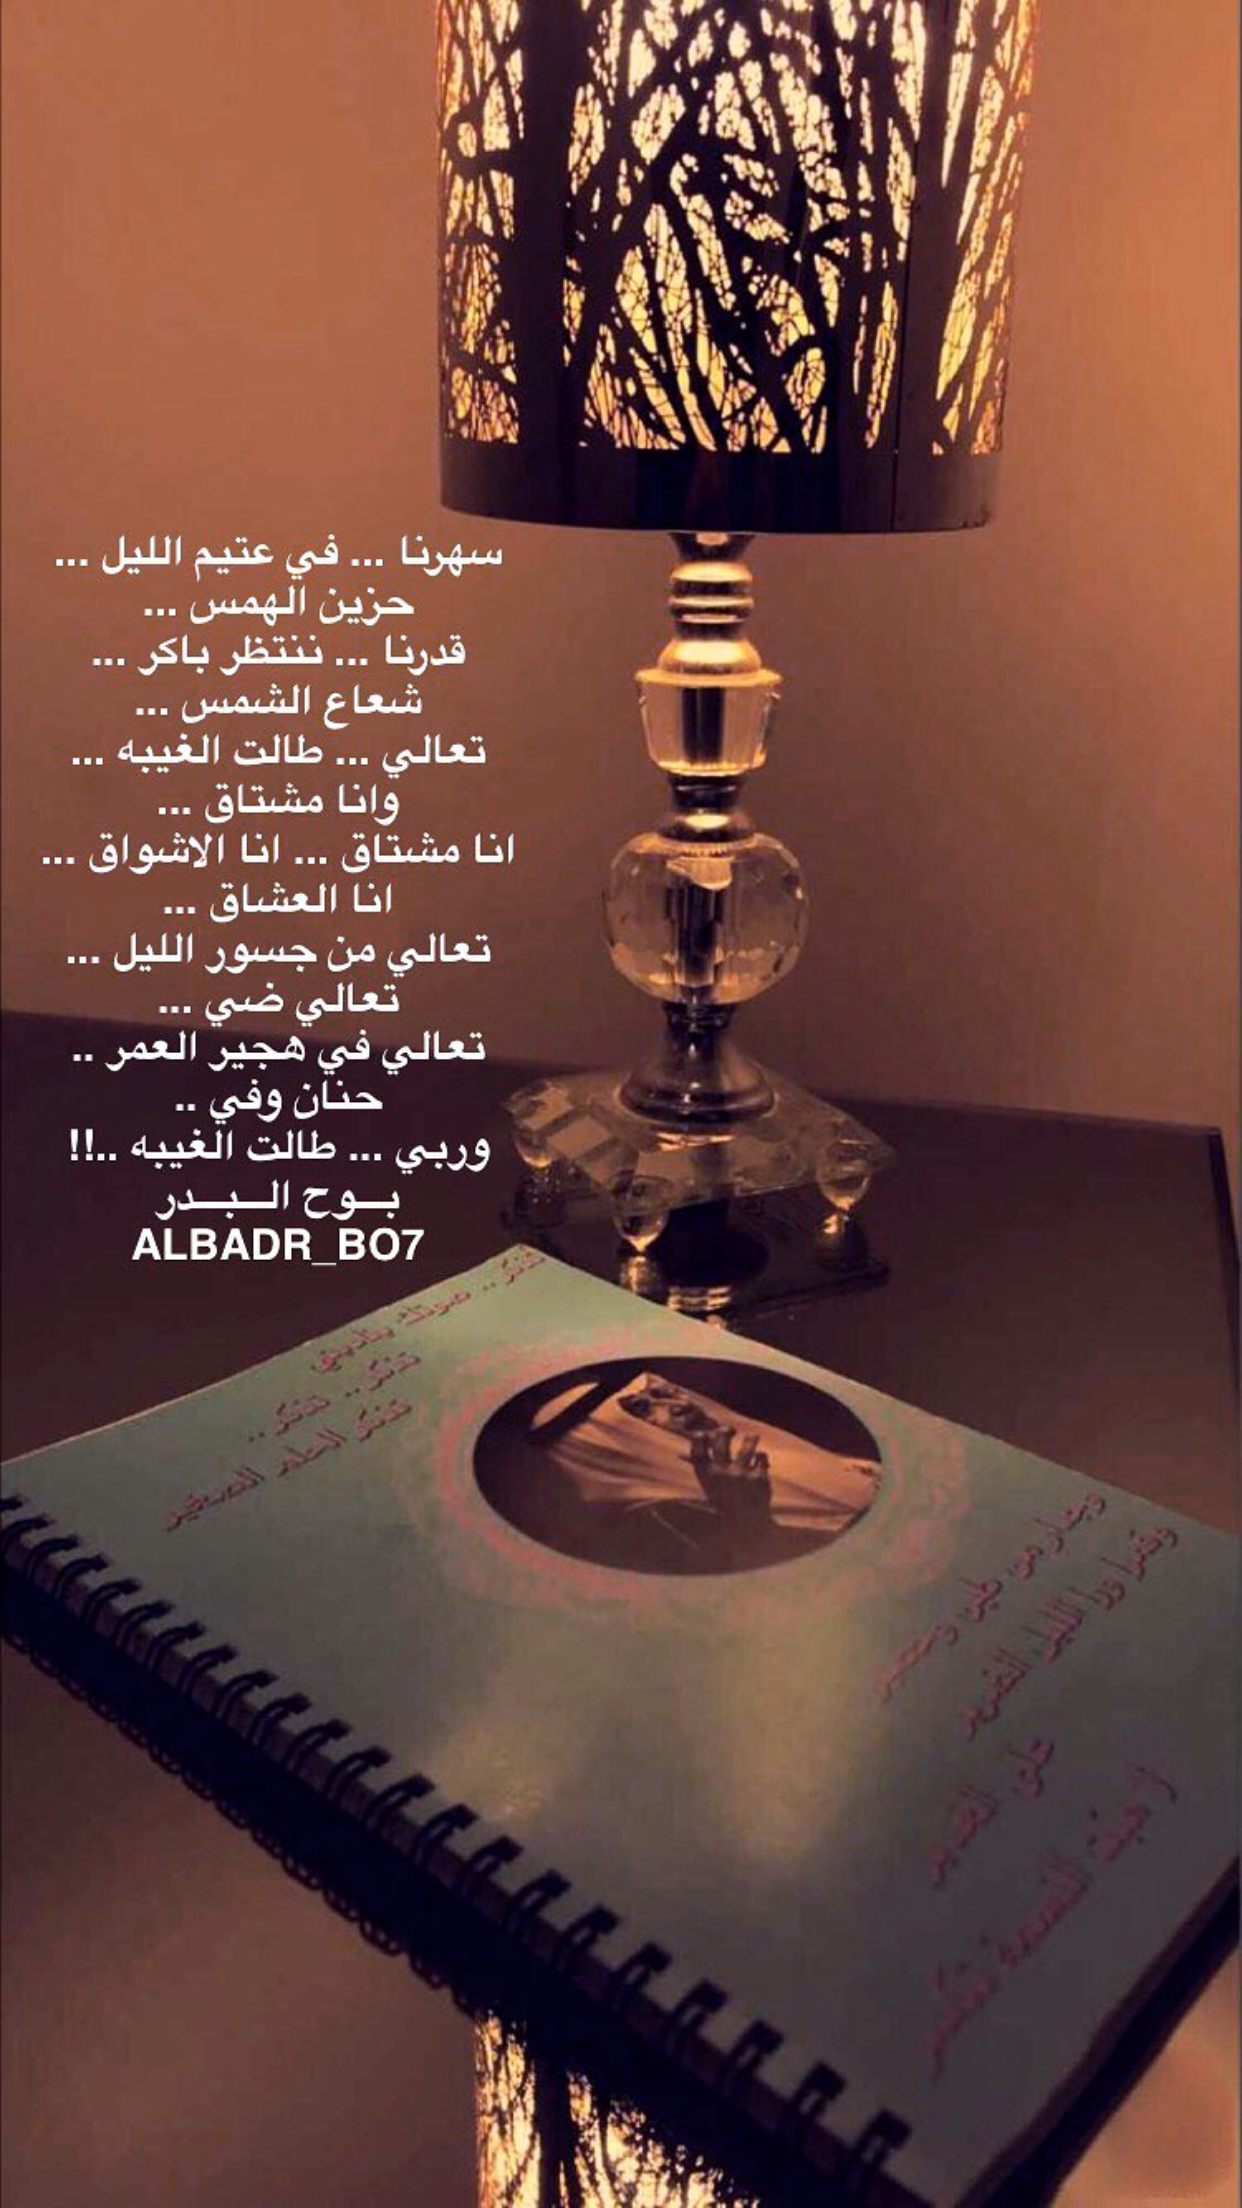 Pin by Rrr on خلفيات (With images) Novelty lamp, Iphone